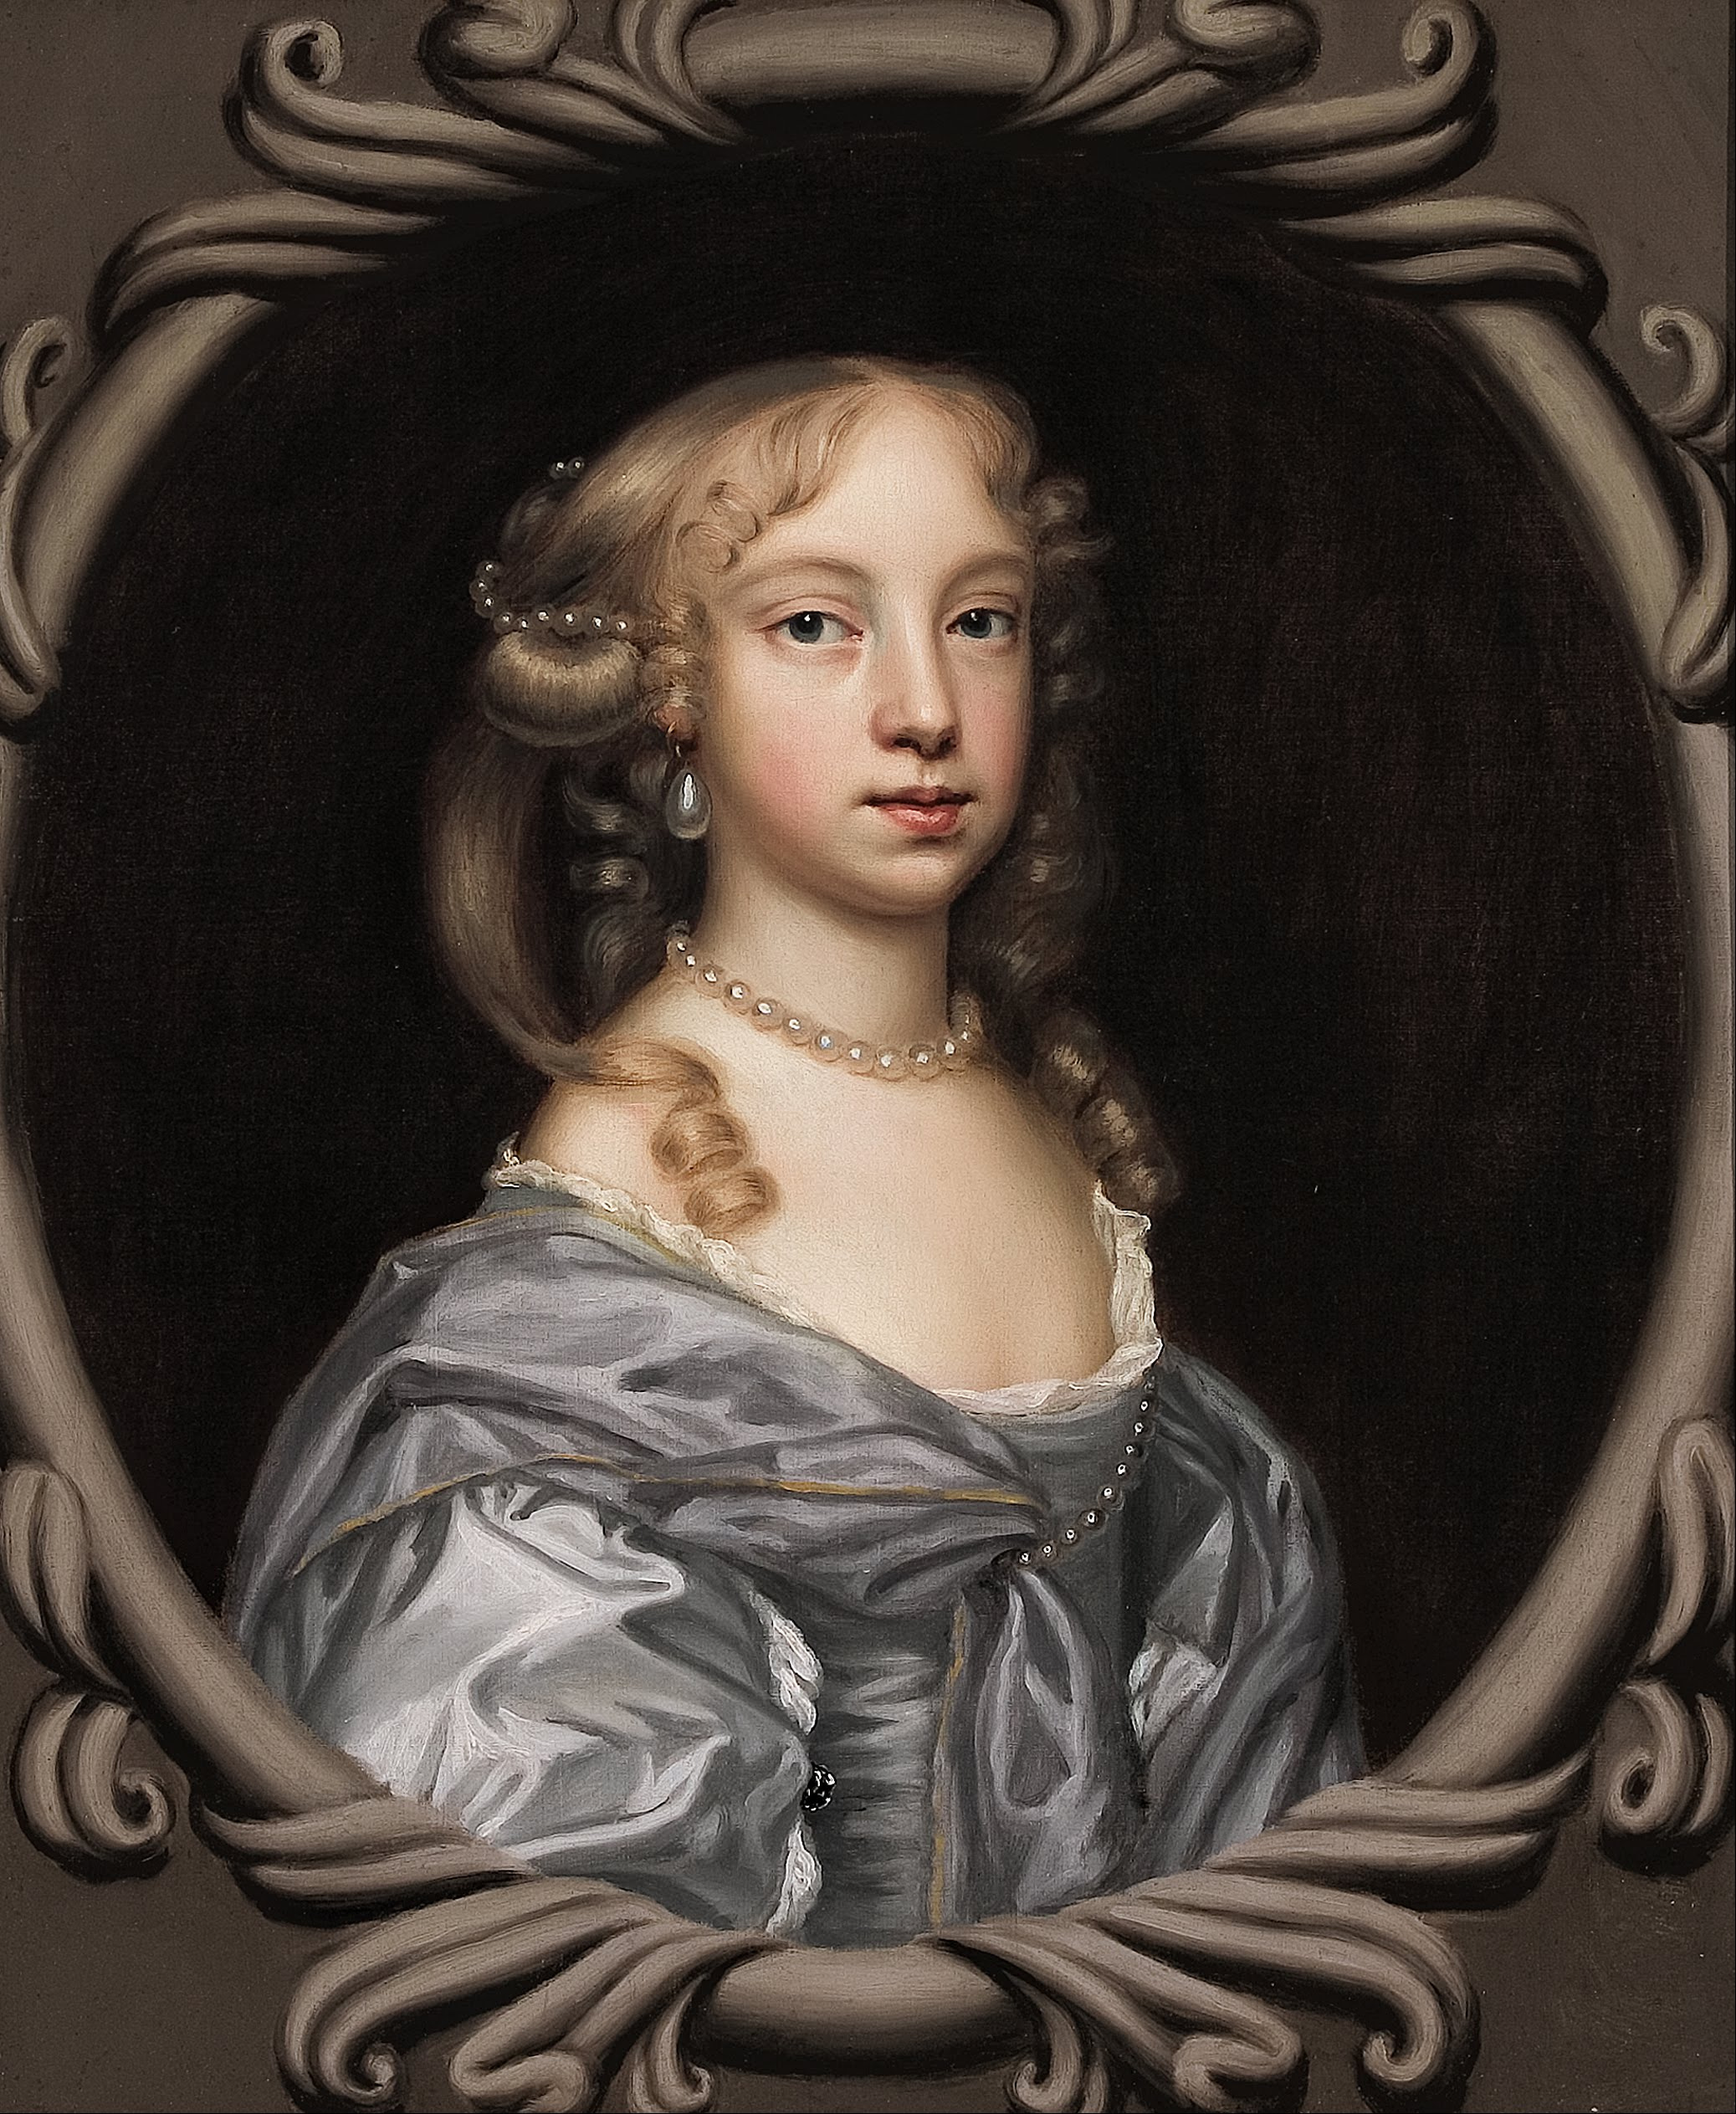 Mary_Beale_-_Mary_Wither_of_Andwell_-_Google_Art_Project Mary Wither of Andwell